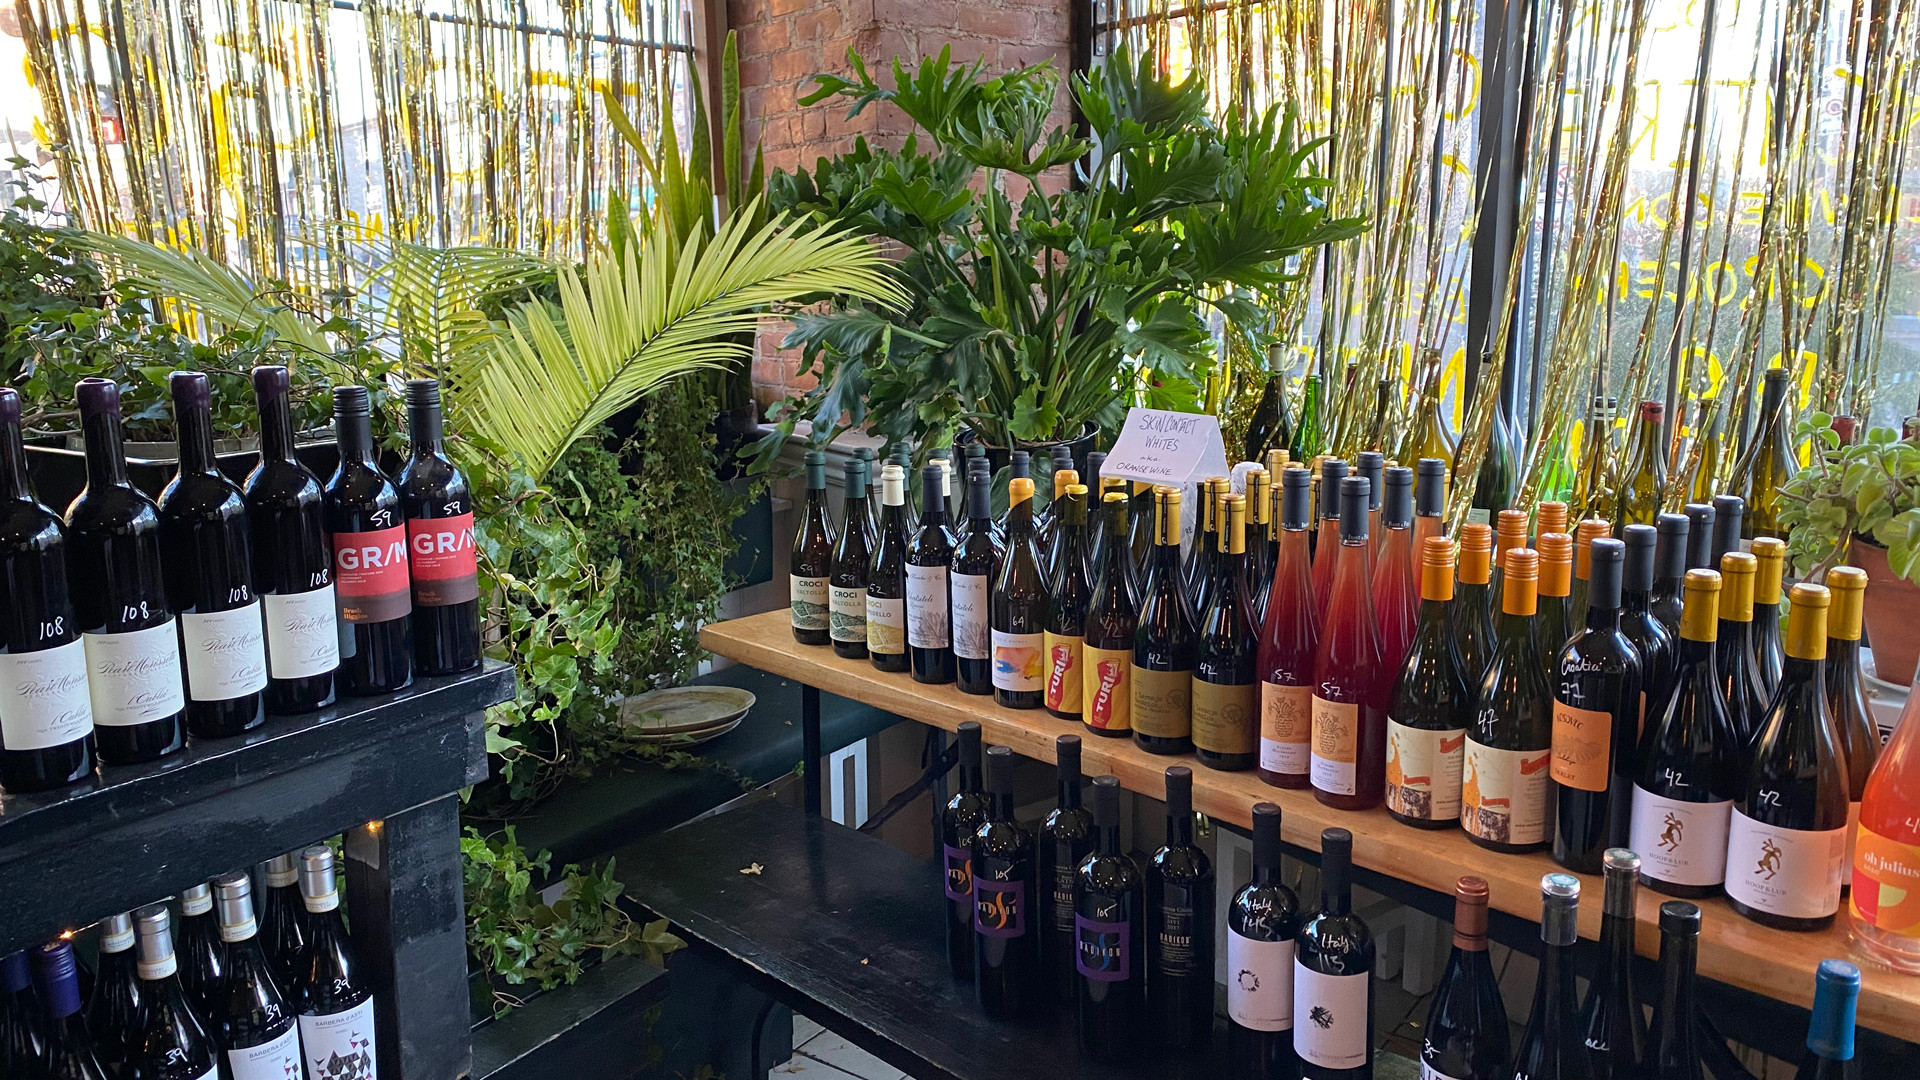 The best bottle shops in Toronto | Midfield has a wide variety of wine for sale by the bottle